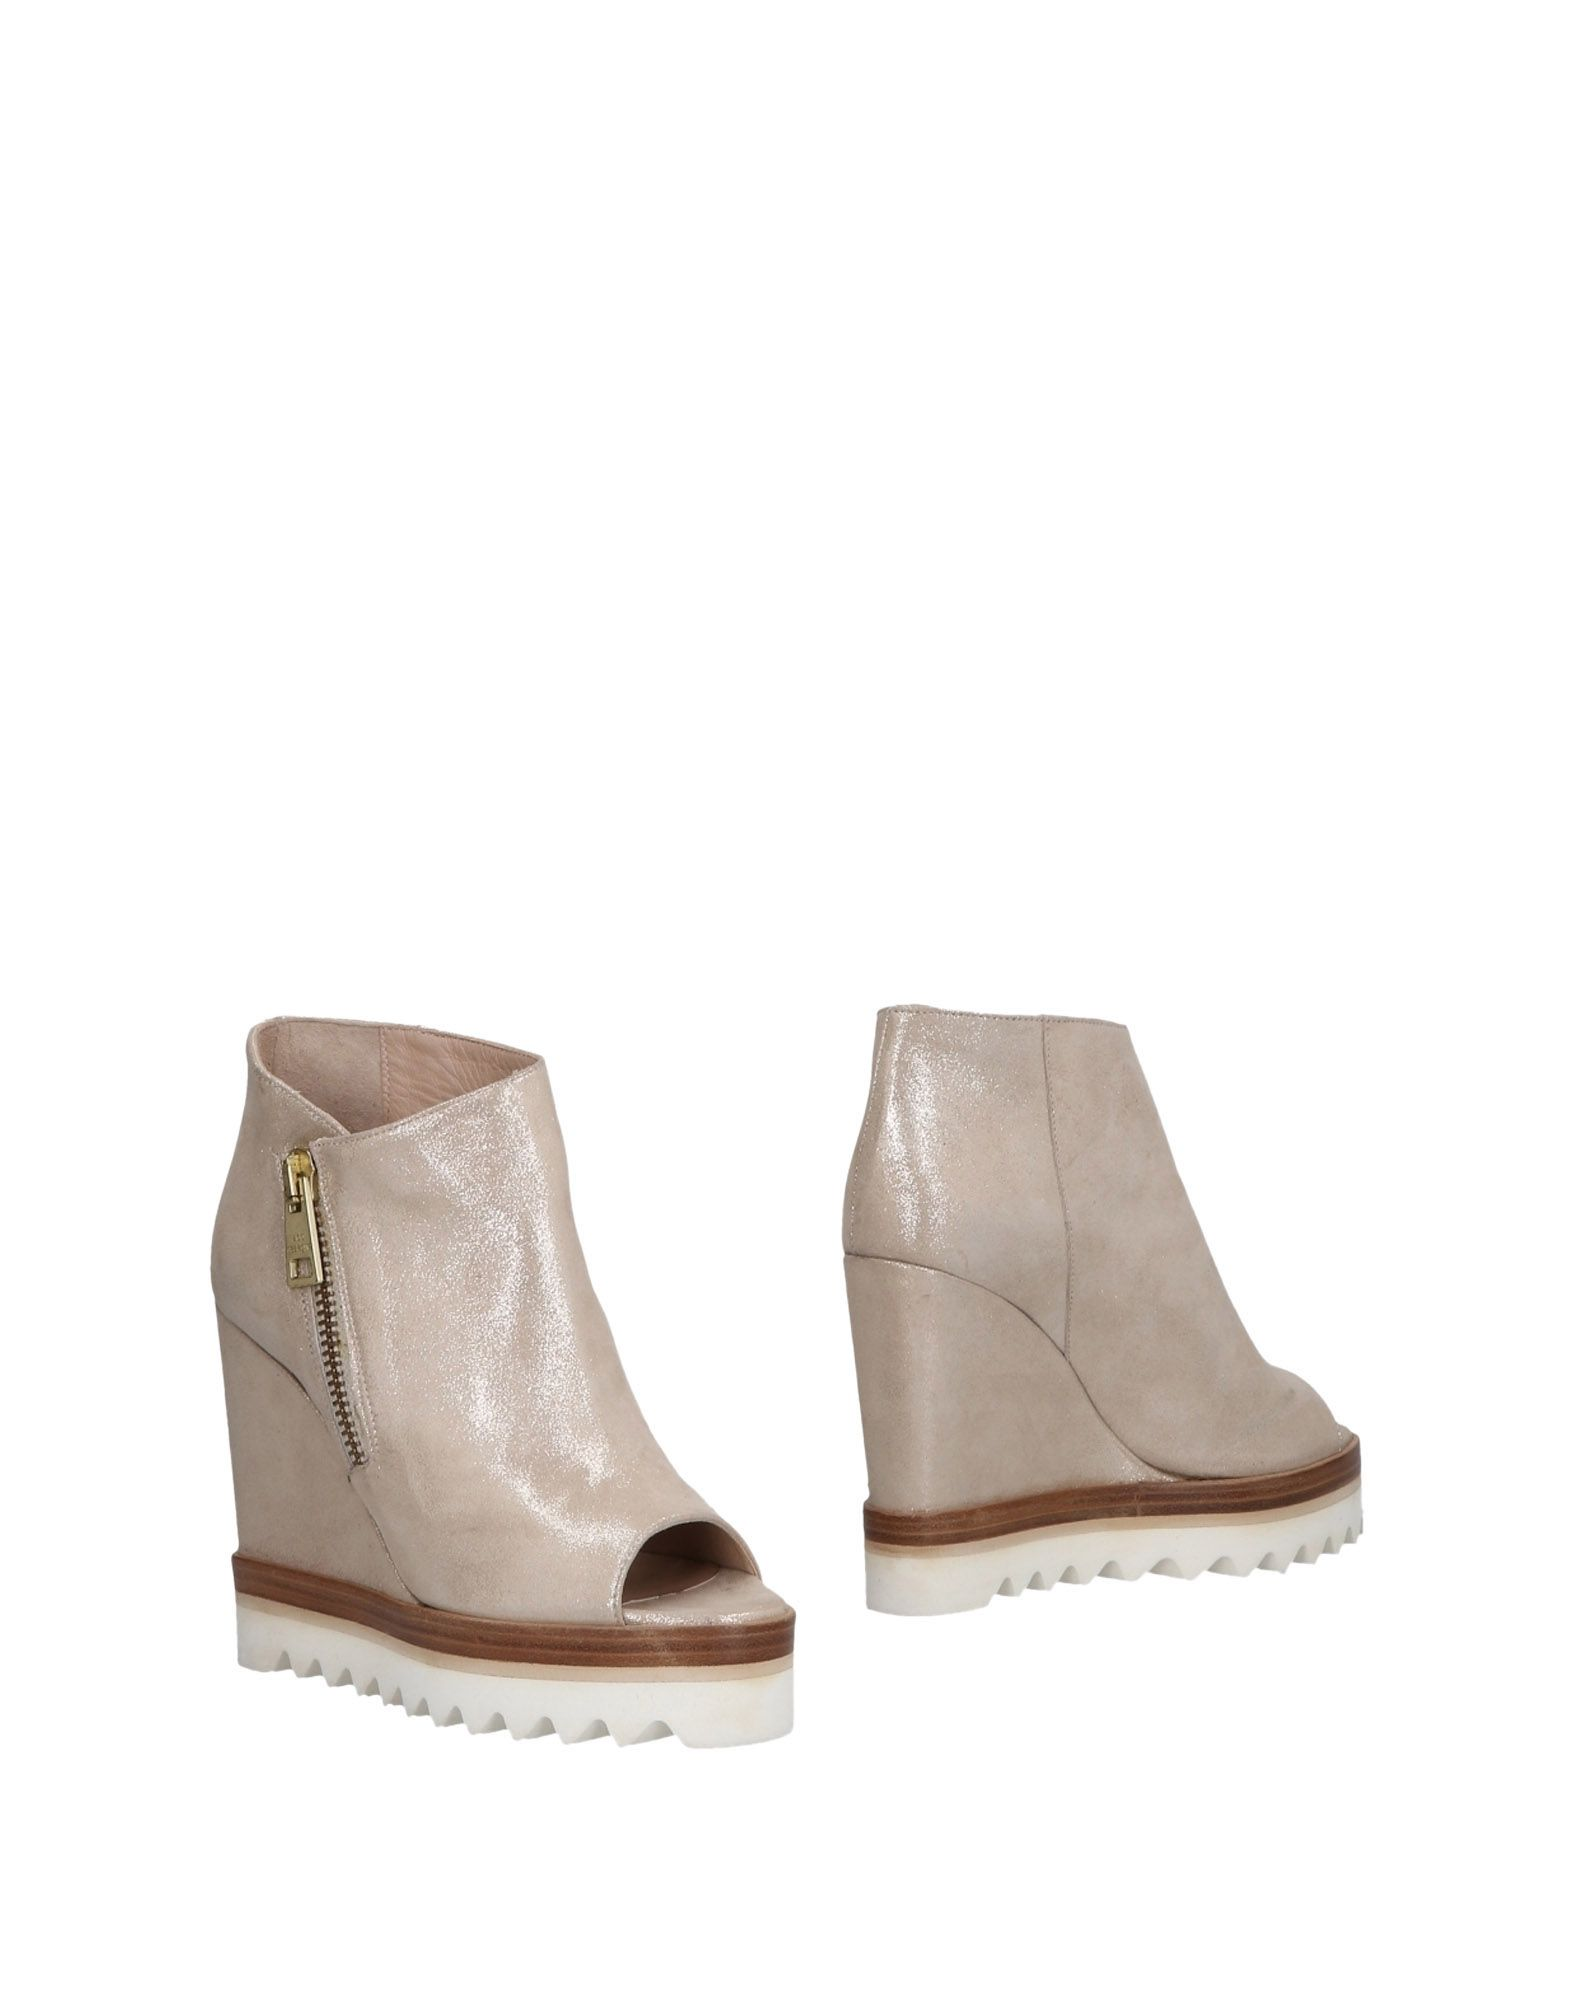 Aldo Castagna Ankle Boot - Women Aldo Castagna Ankle Boots Boots Ankle online on  Canada - 11474483UW 10fbdf